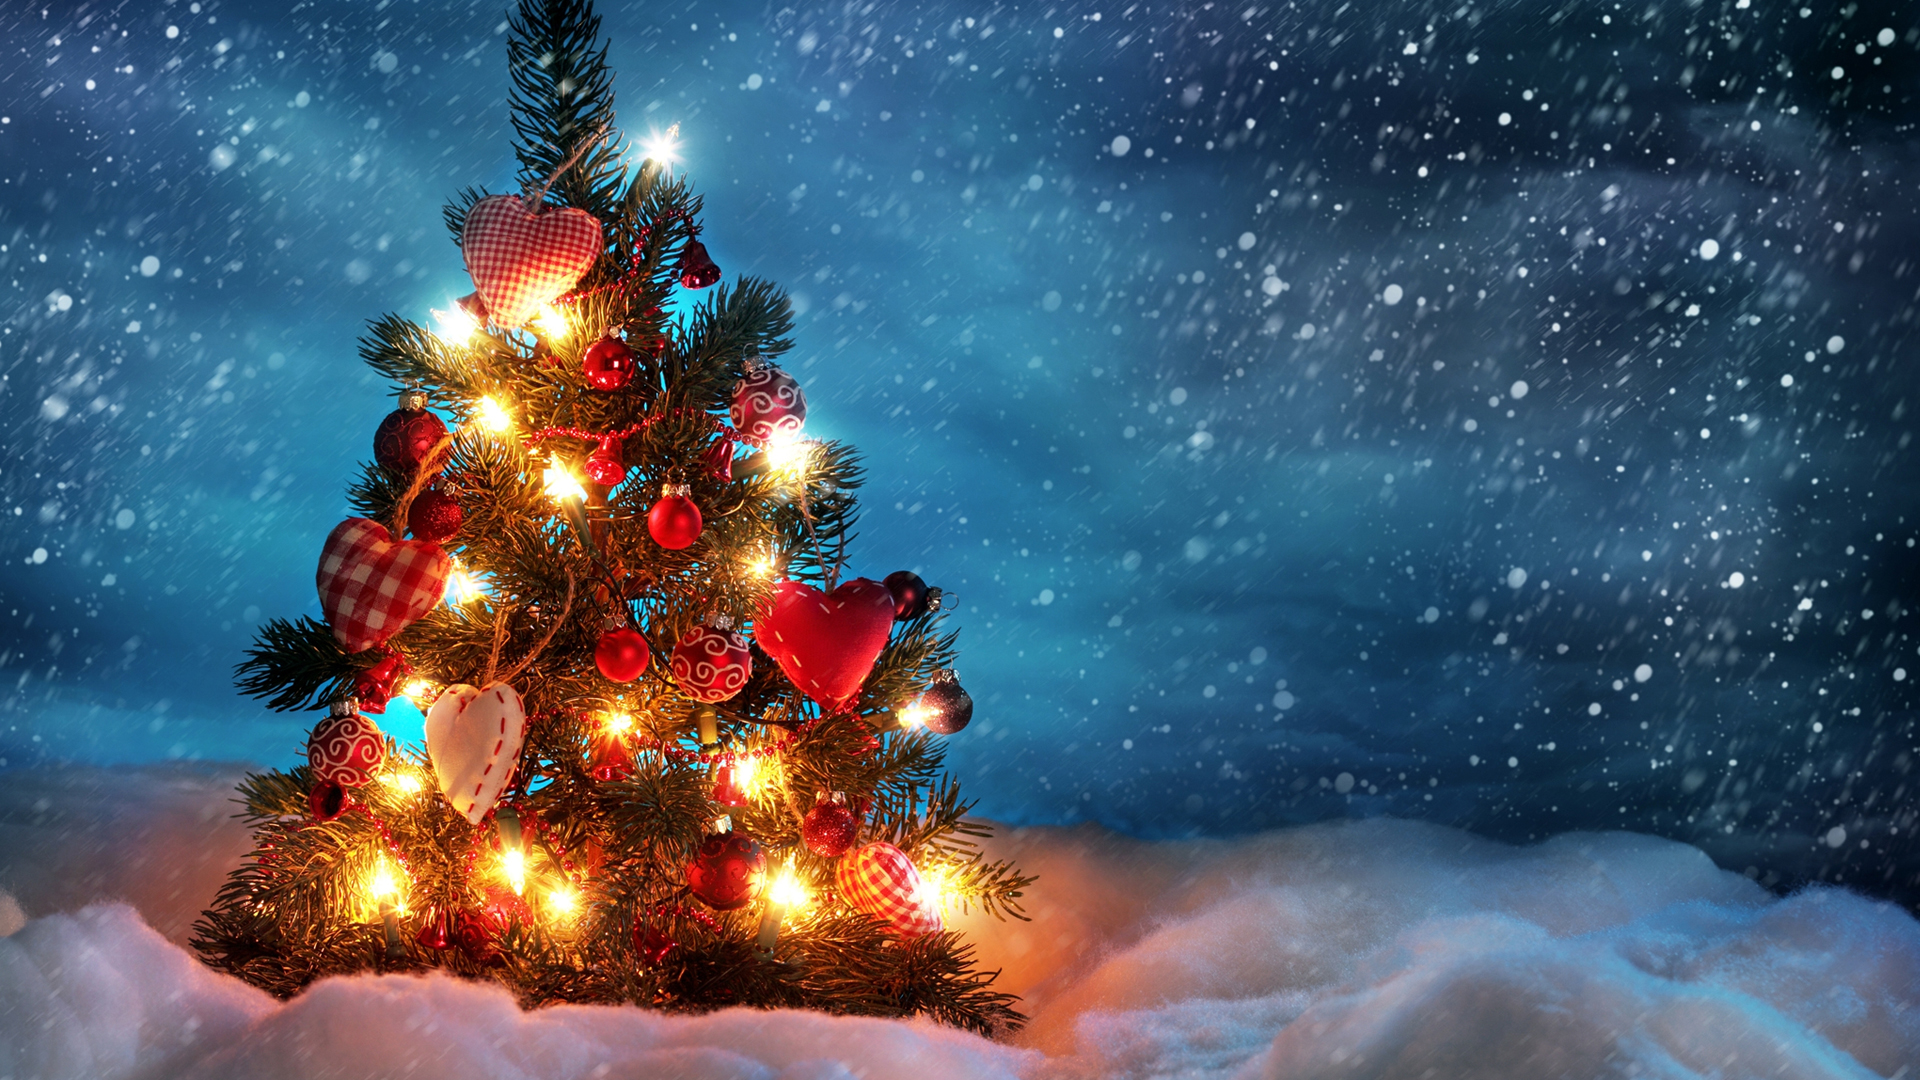 Christmas Backgrounds Best for Kodi 4